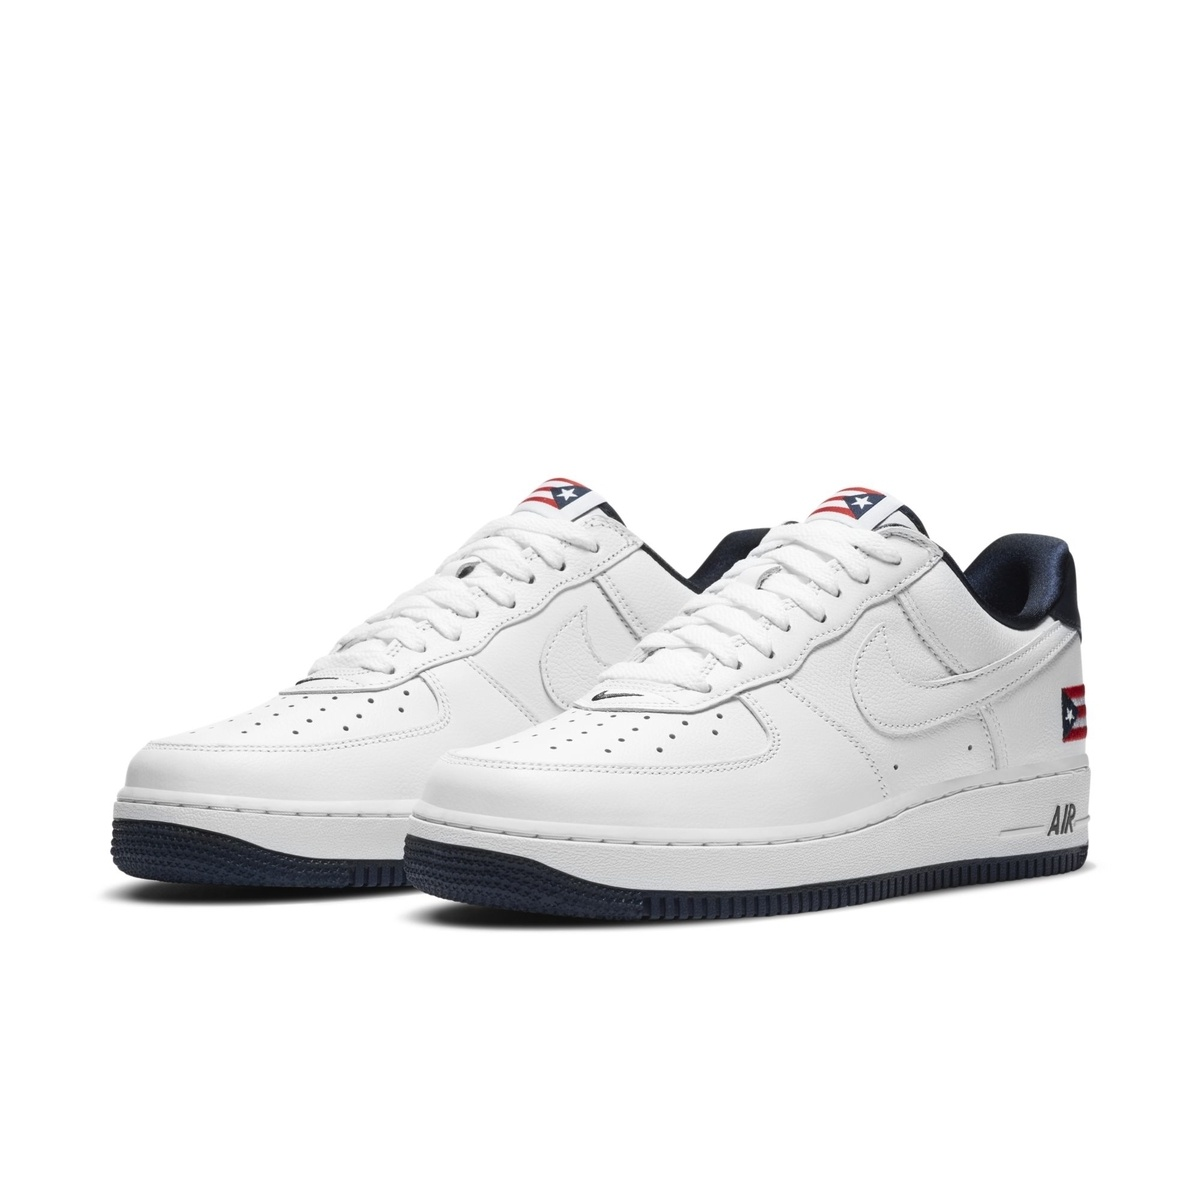 Nike Air Force 1 Retro QS Puerto Rico CJ1386-100